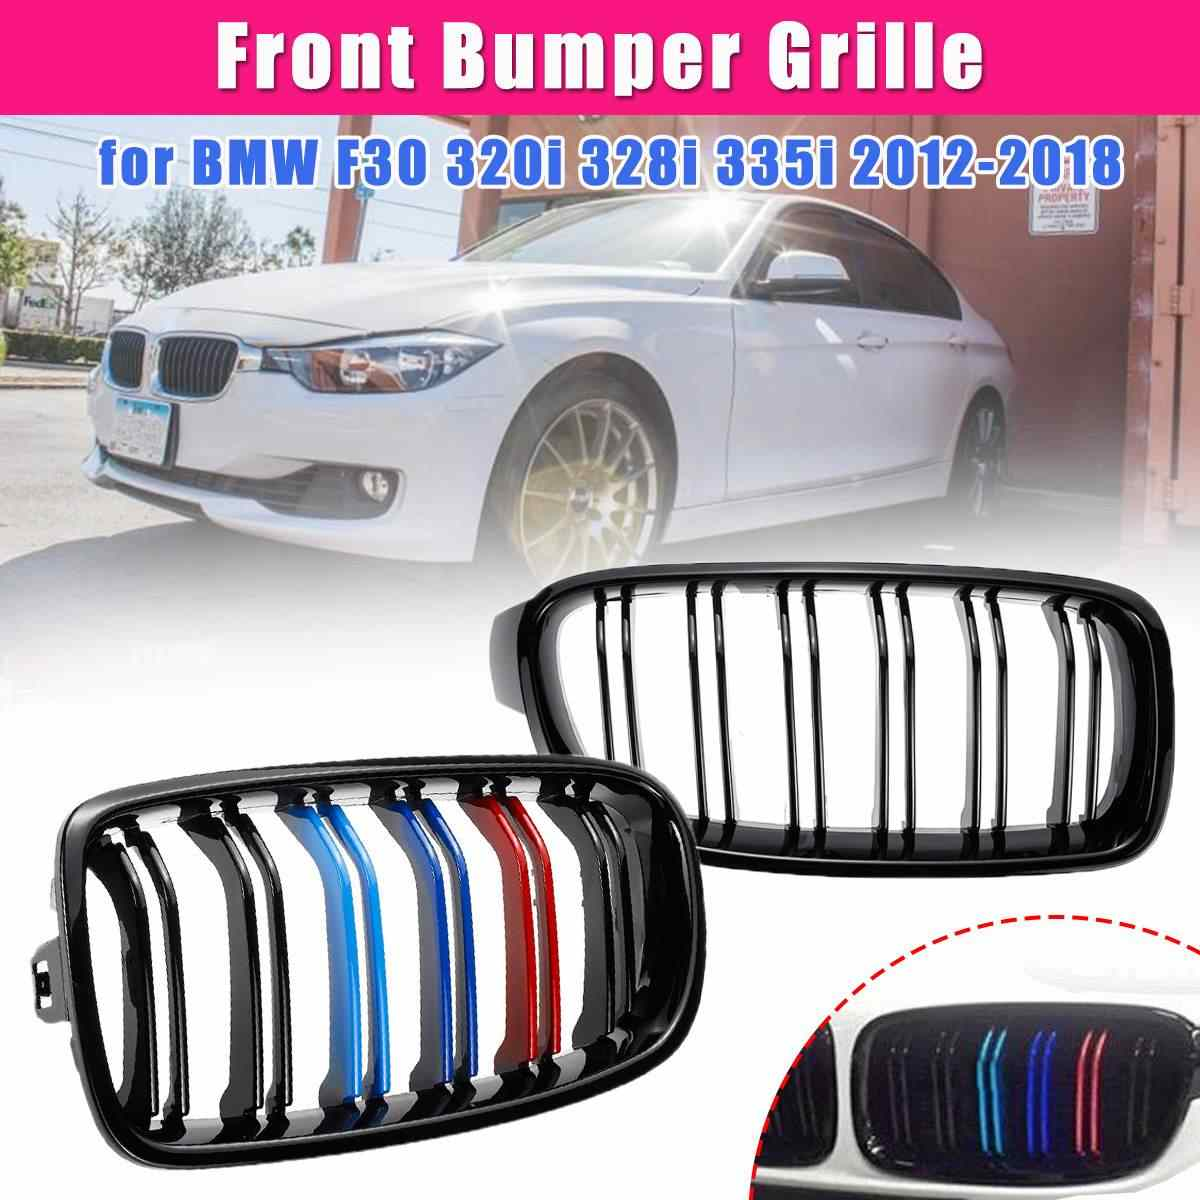 1Pair Black/M-Color Car Racing Grills Front Kidney Grilles For for BMW F30 320i 328i 335i 2012-2018 Auto Accessories